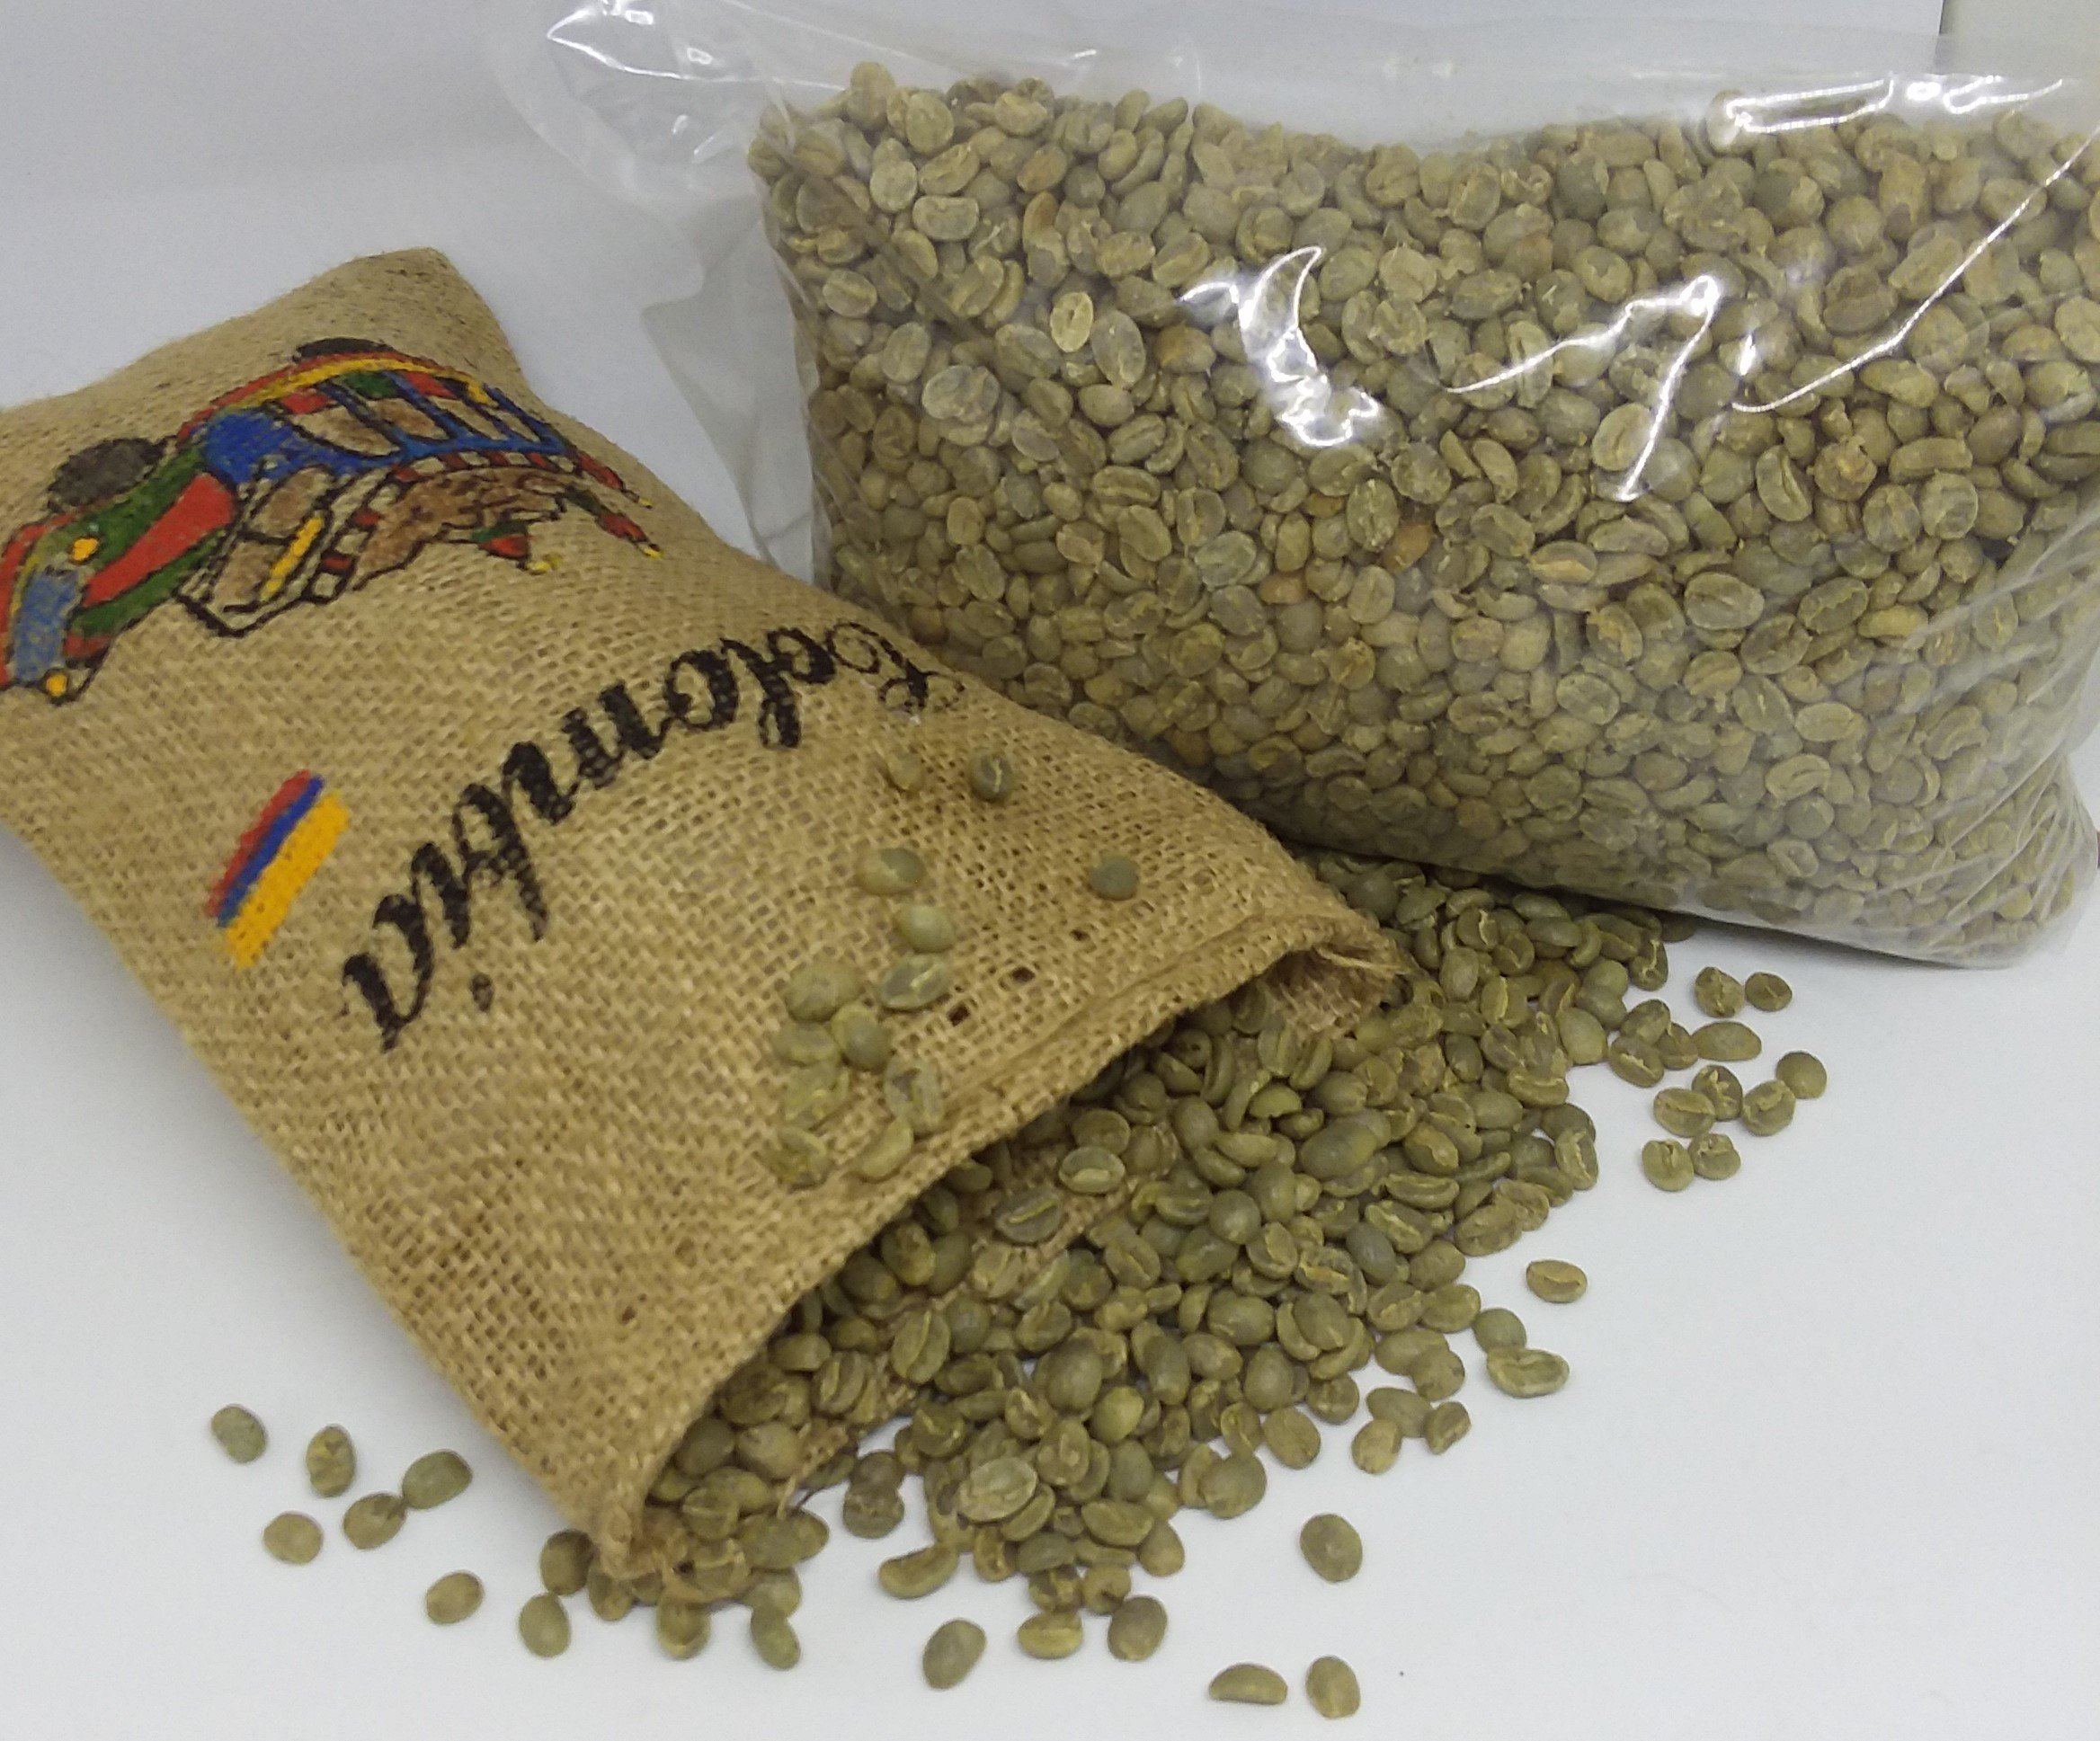 Unroasted Green Coffee Beans Special micro lot Farm La Compañia (25 LB) by Micro-Lot: # 148 (Image #1)